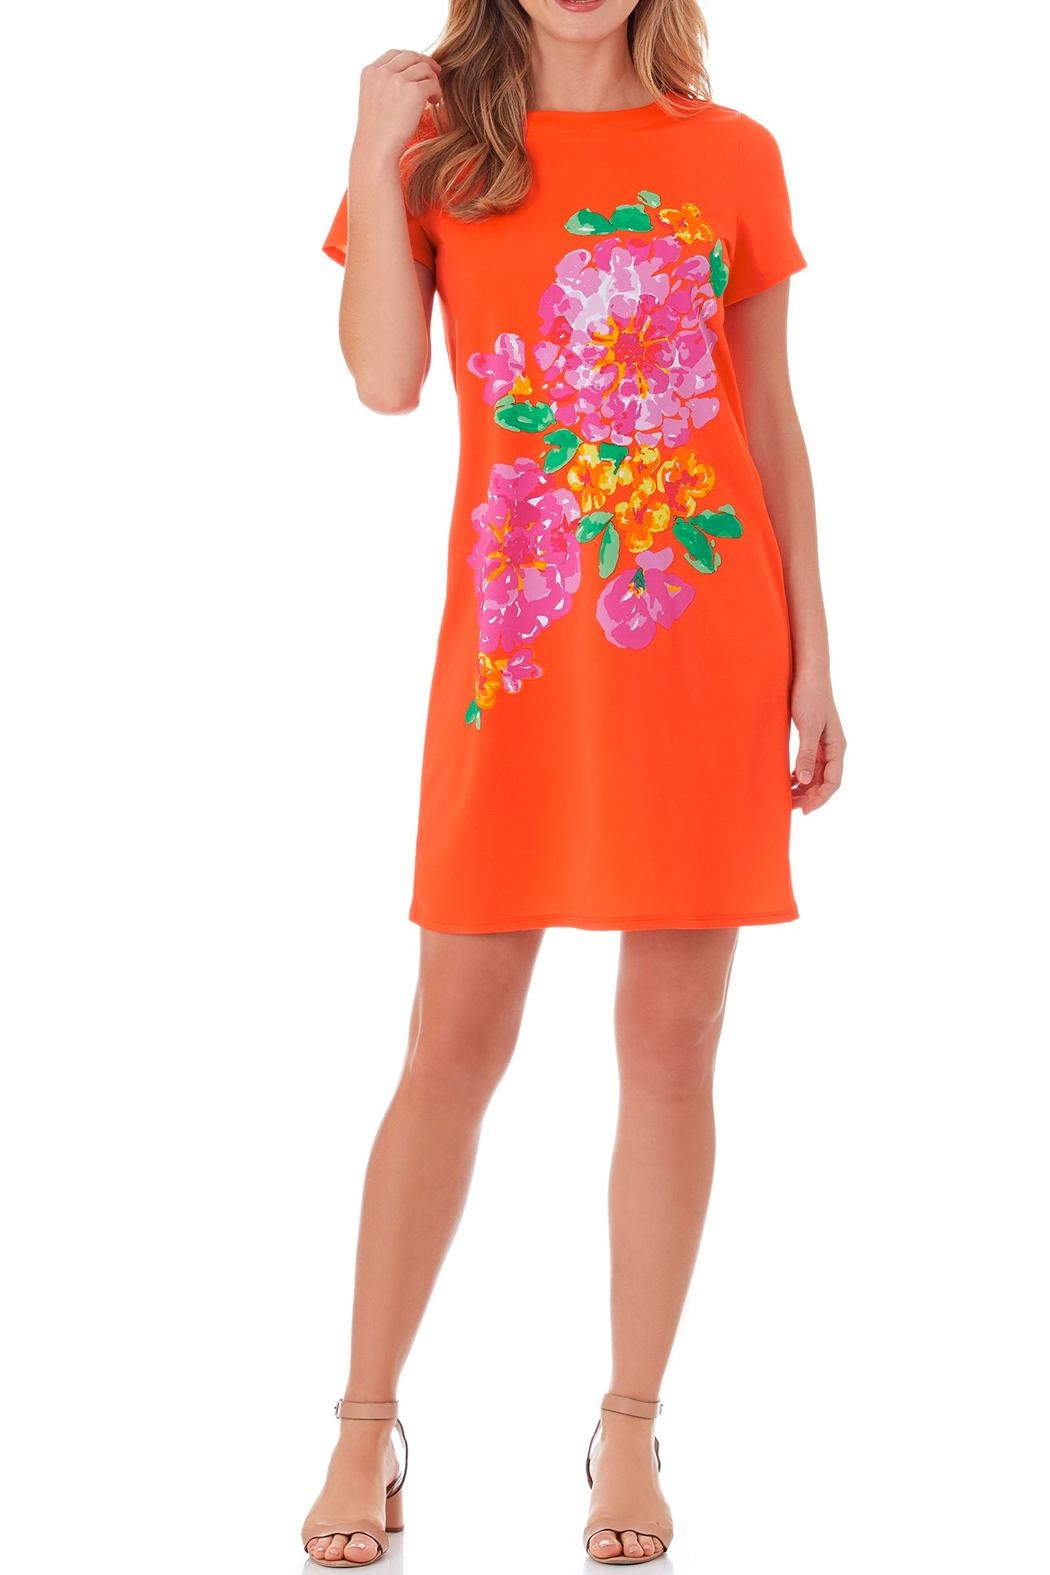 Jude Connally Ella T-Shirt Dress - Main Image